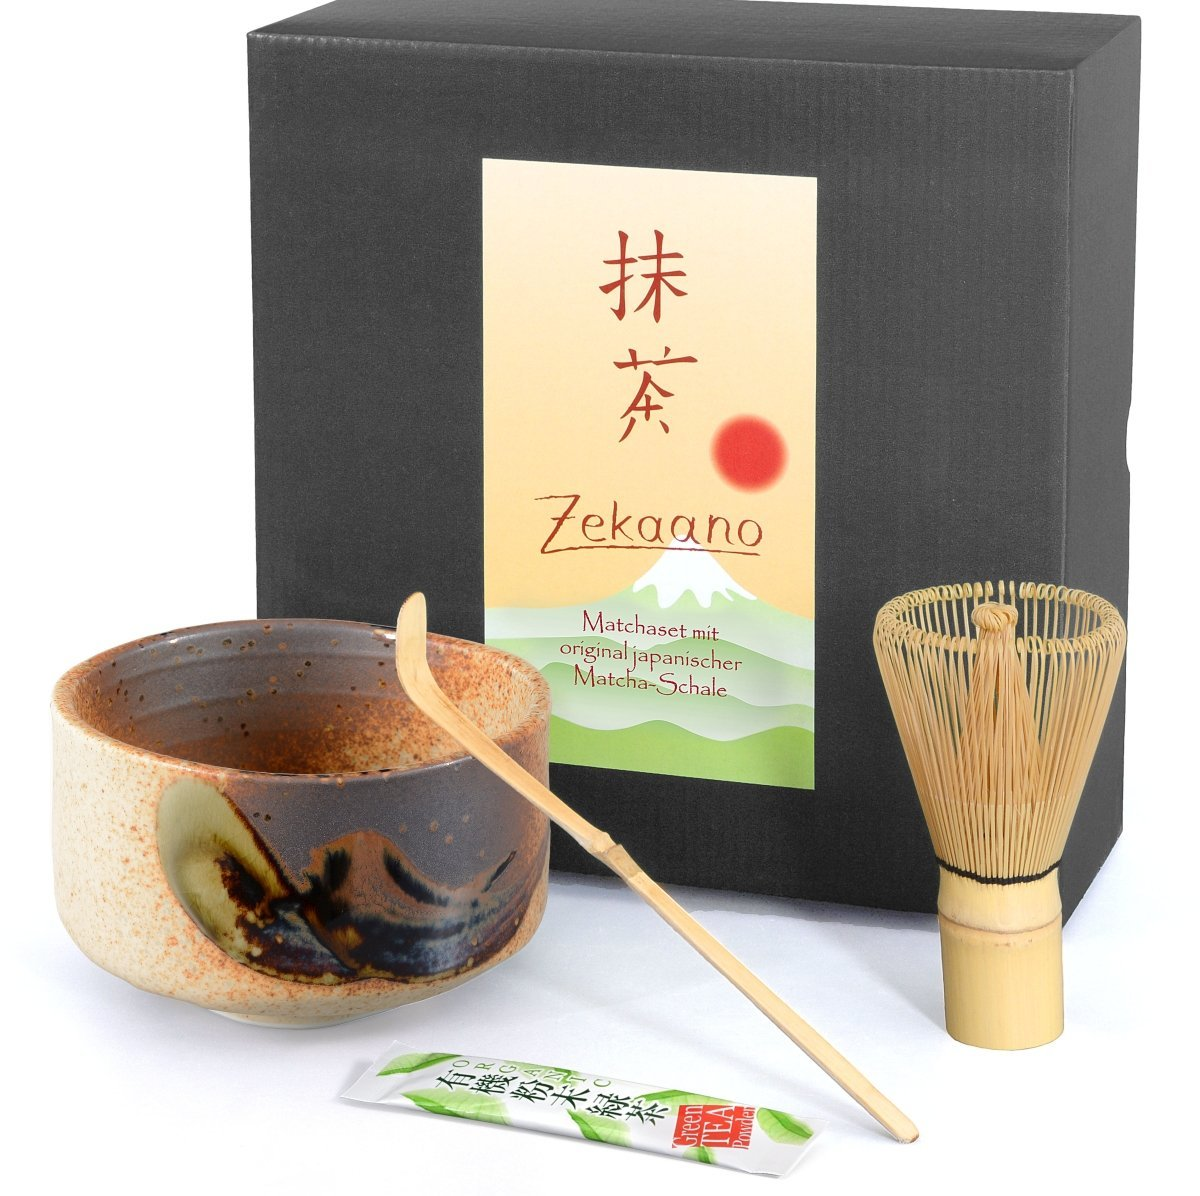 Best Matcha Tea Set Kit Our Top Picks In 2019